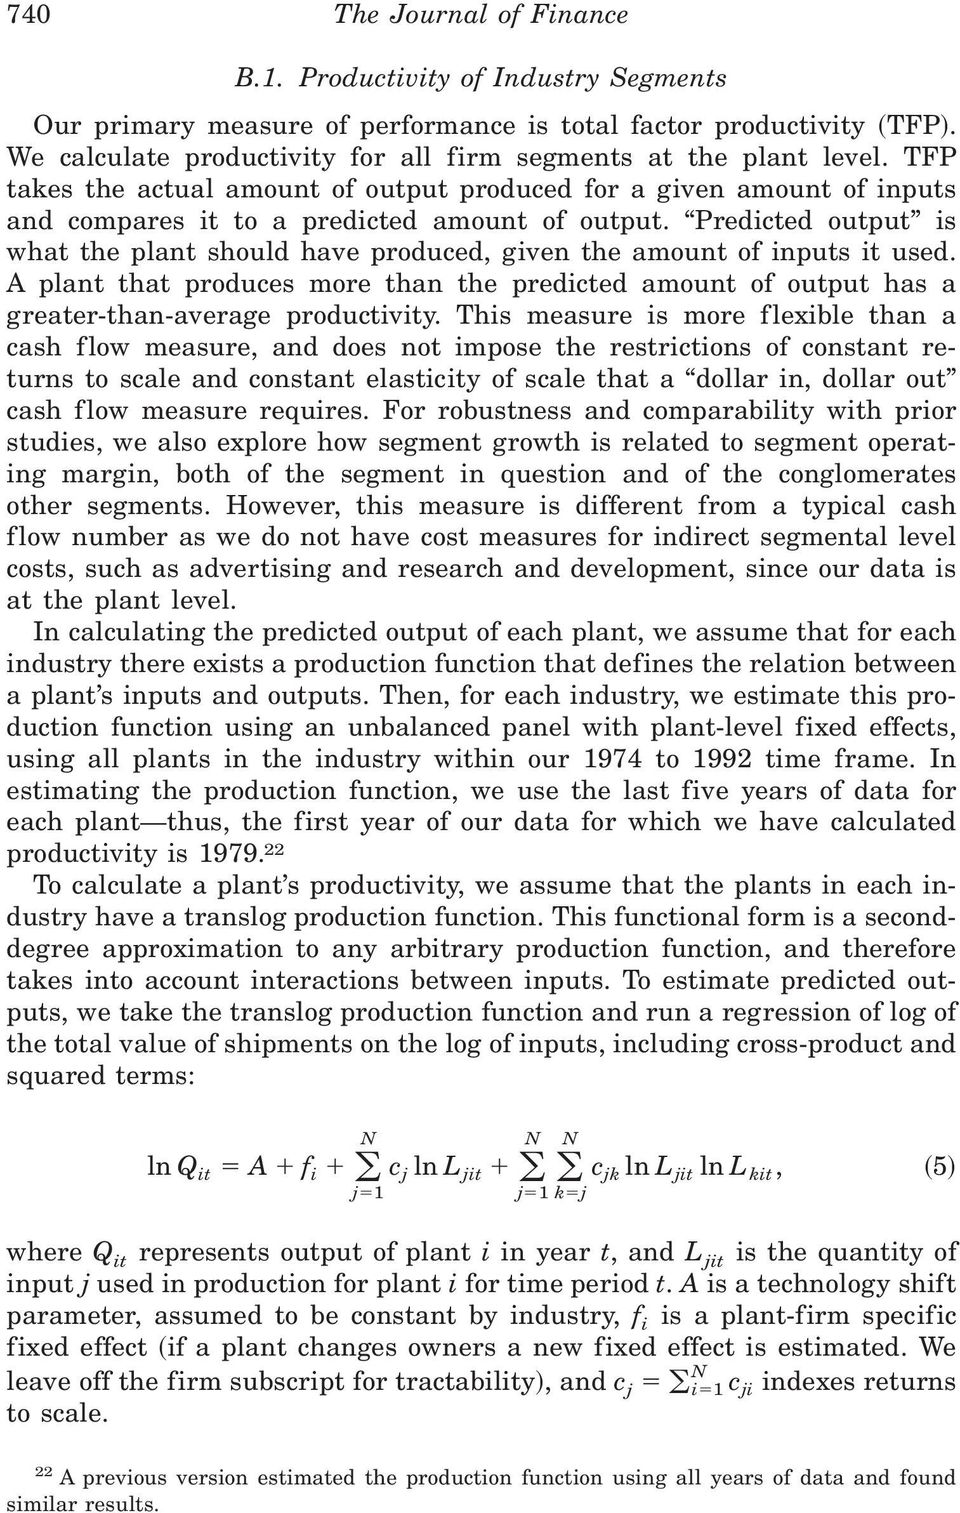 Predicted output is what the plant should have produced, given the amount of inputs it used. A plant that produces more than the predicted amount of output has a greater-than-average productivity.